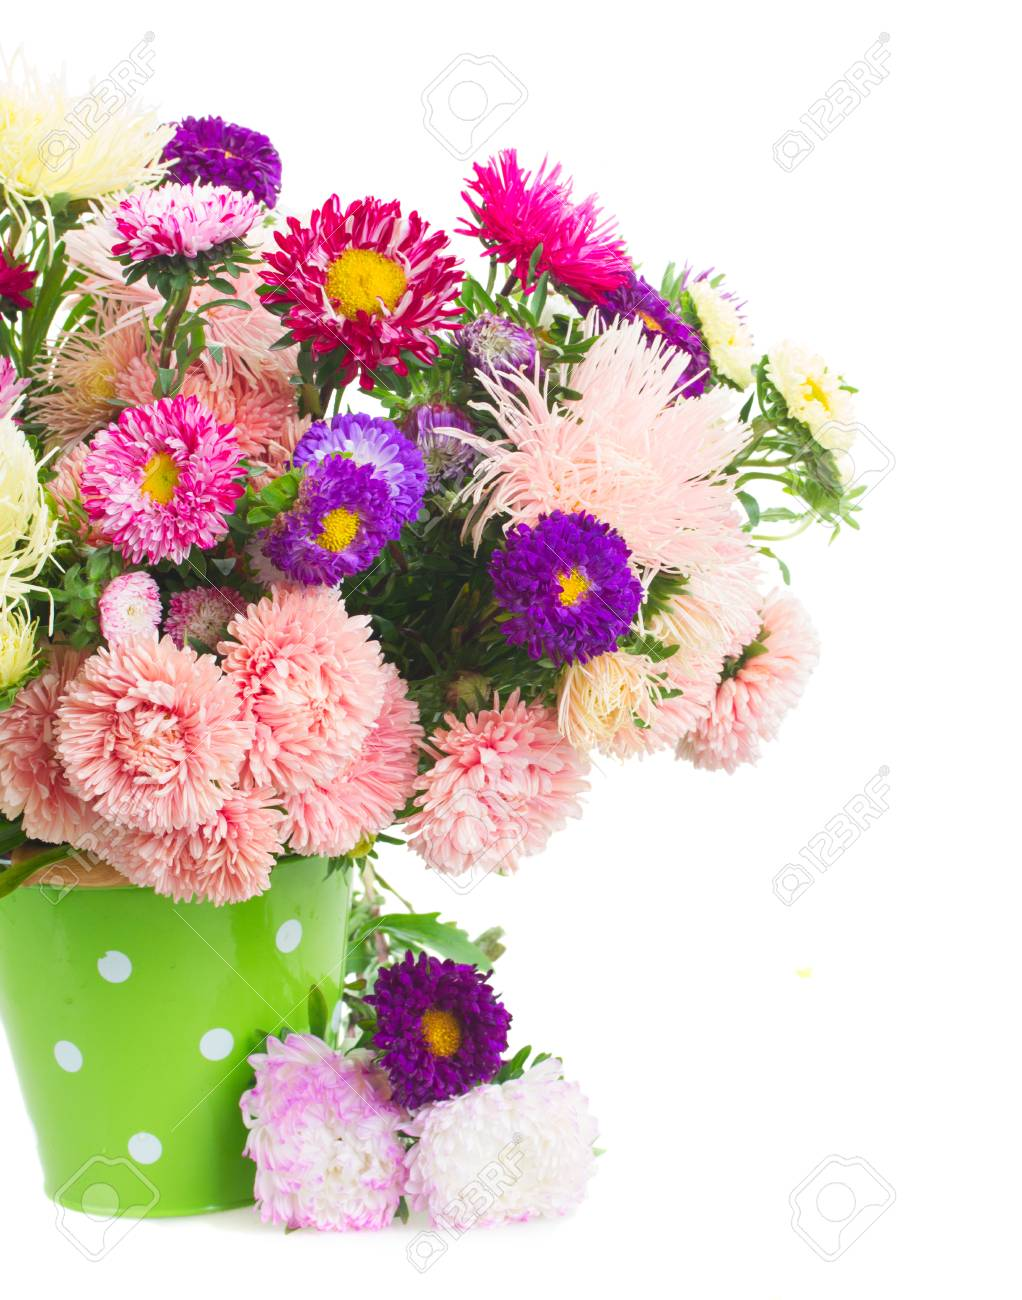 Colorful aster flowers bouquet in green pot close up isolated colorful aster flowers bouquet in green pot close up isolated on white background stock photo izmirmasajfo